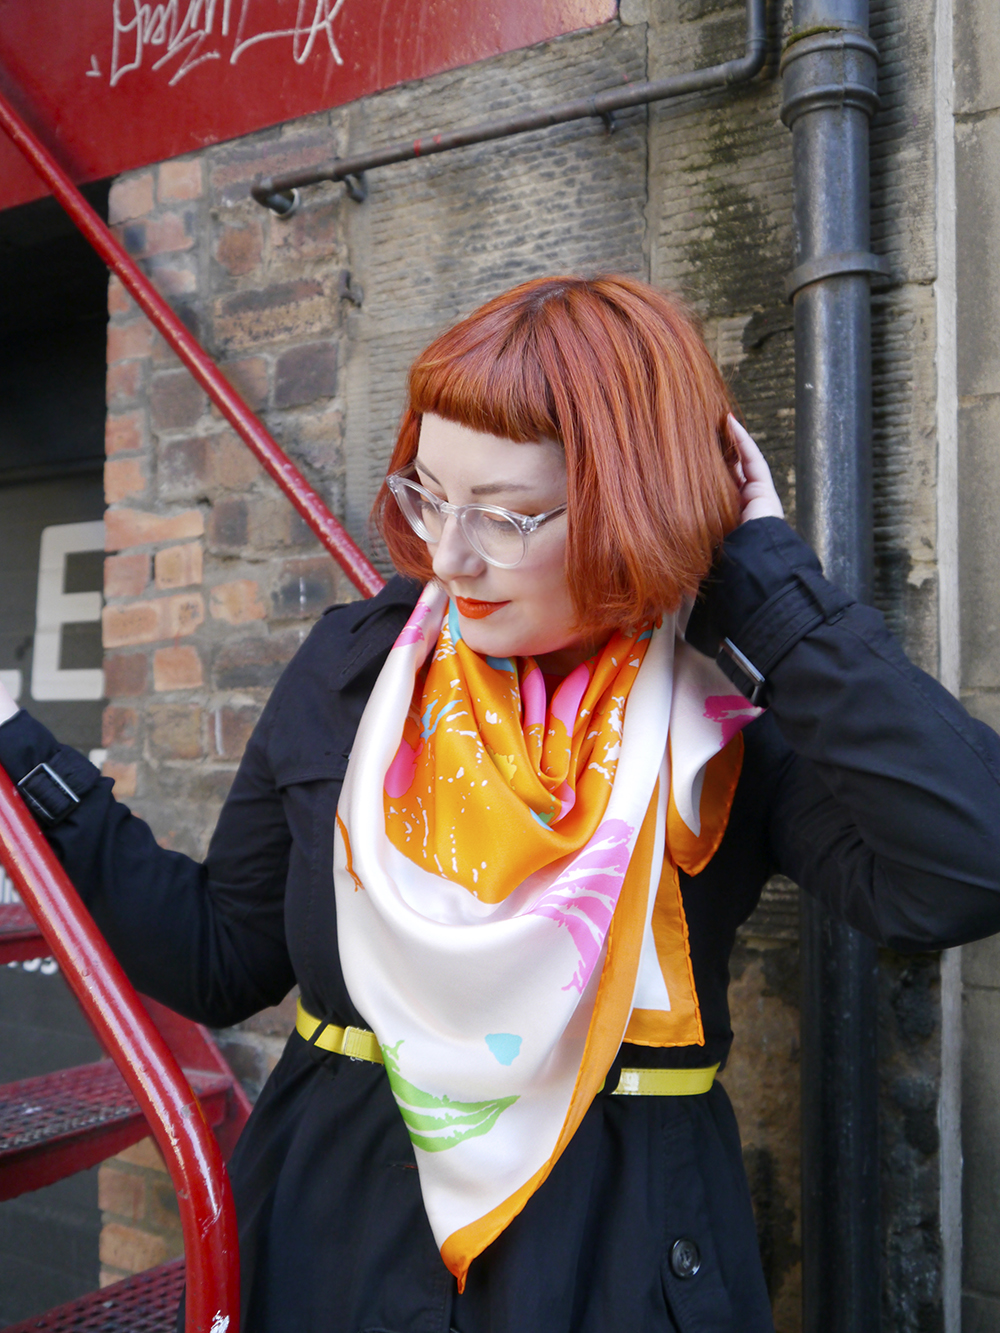 Charcot, MS Awareness Week, MS inspired jewellery, Scottish Blogger, red head, red bob, micro frine, ginger hair, Scottish Street Style, Scottish designer, skull necklace, neon necklaces, neon jewellery, colourful scarf, silk scarf, Sun Jellies, Taisir Gibreel, Iolla, seewithiolla, charity shop, Edinburgh street style, colourful outfit, summer style, bright outfit